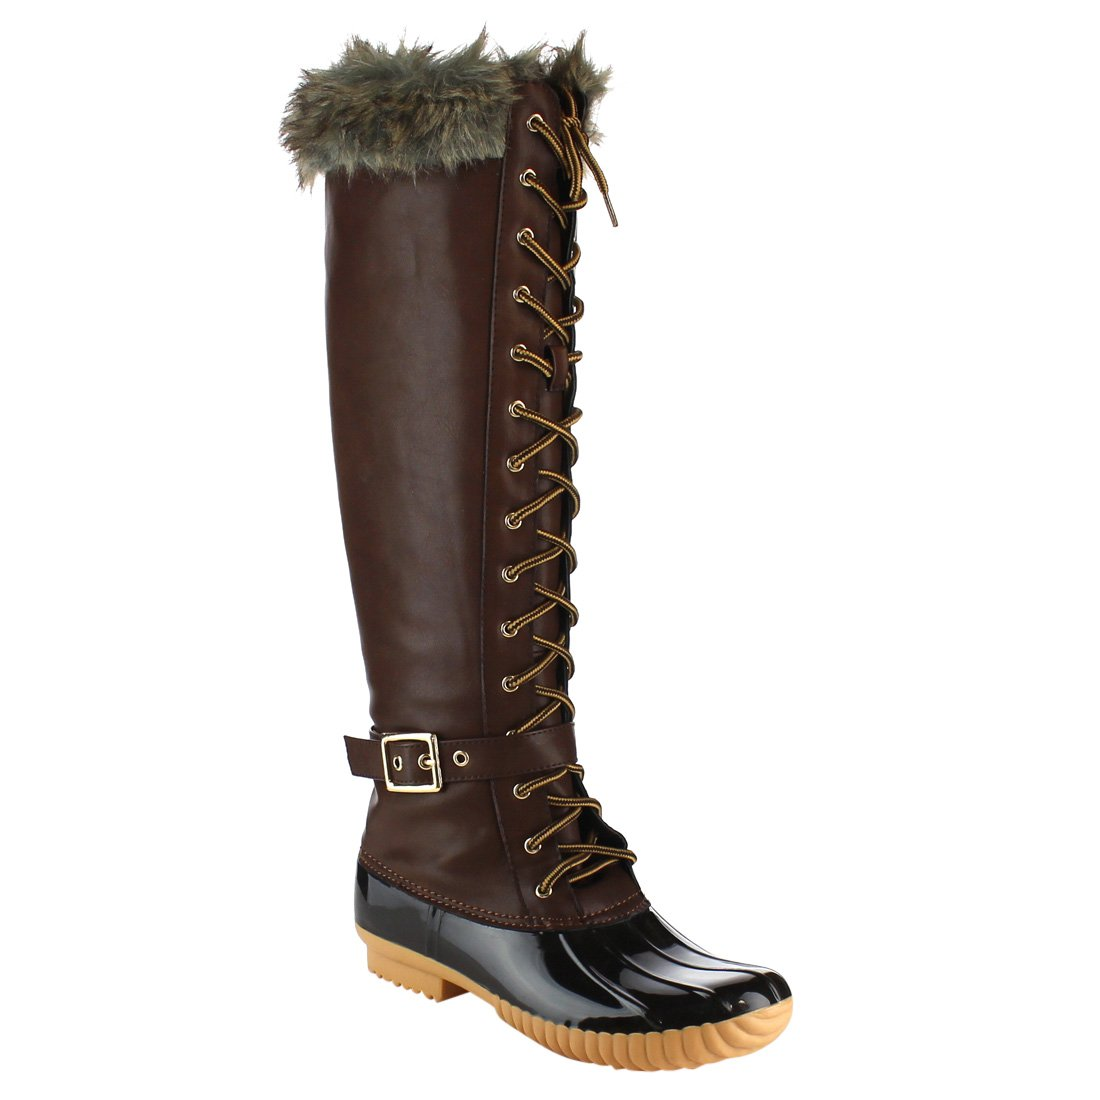 Women's Knee High Winter Boots Lace up Insulated Fur Cuff Trim Waterproof Rubber Sole Duck Snow Rain Shoe Boots B074FVNBHP 6 B(M) US|Brown Pvc